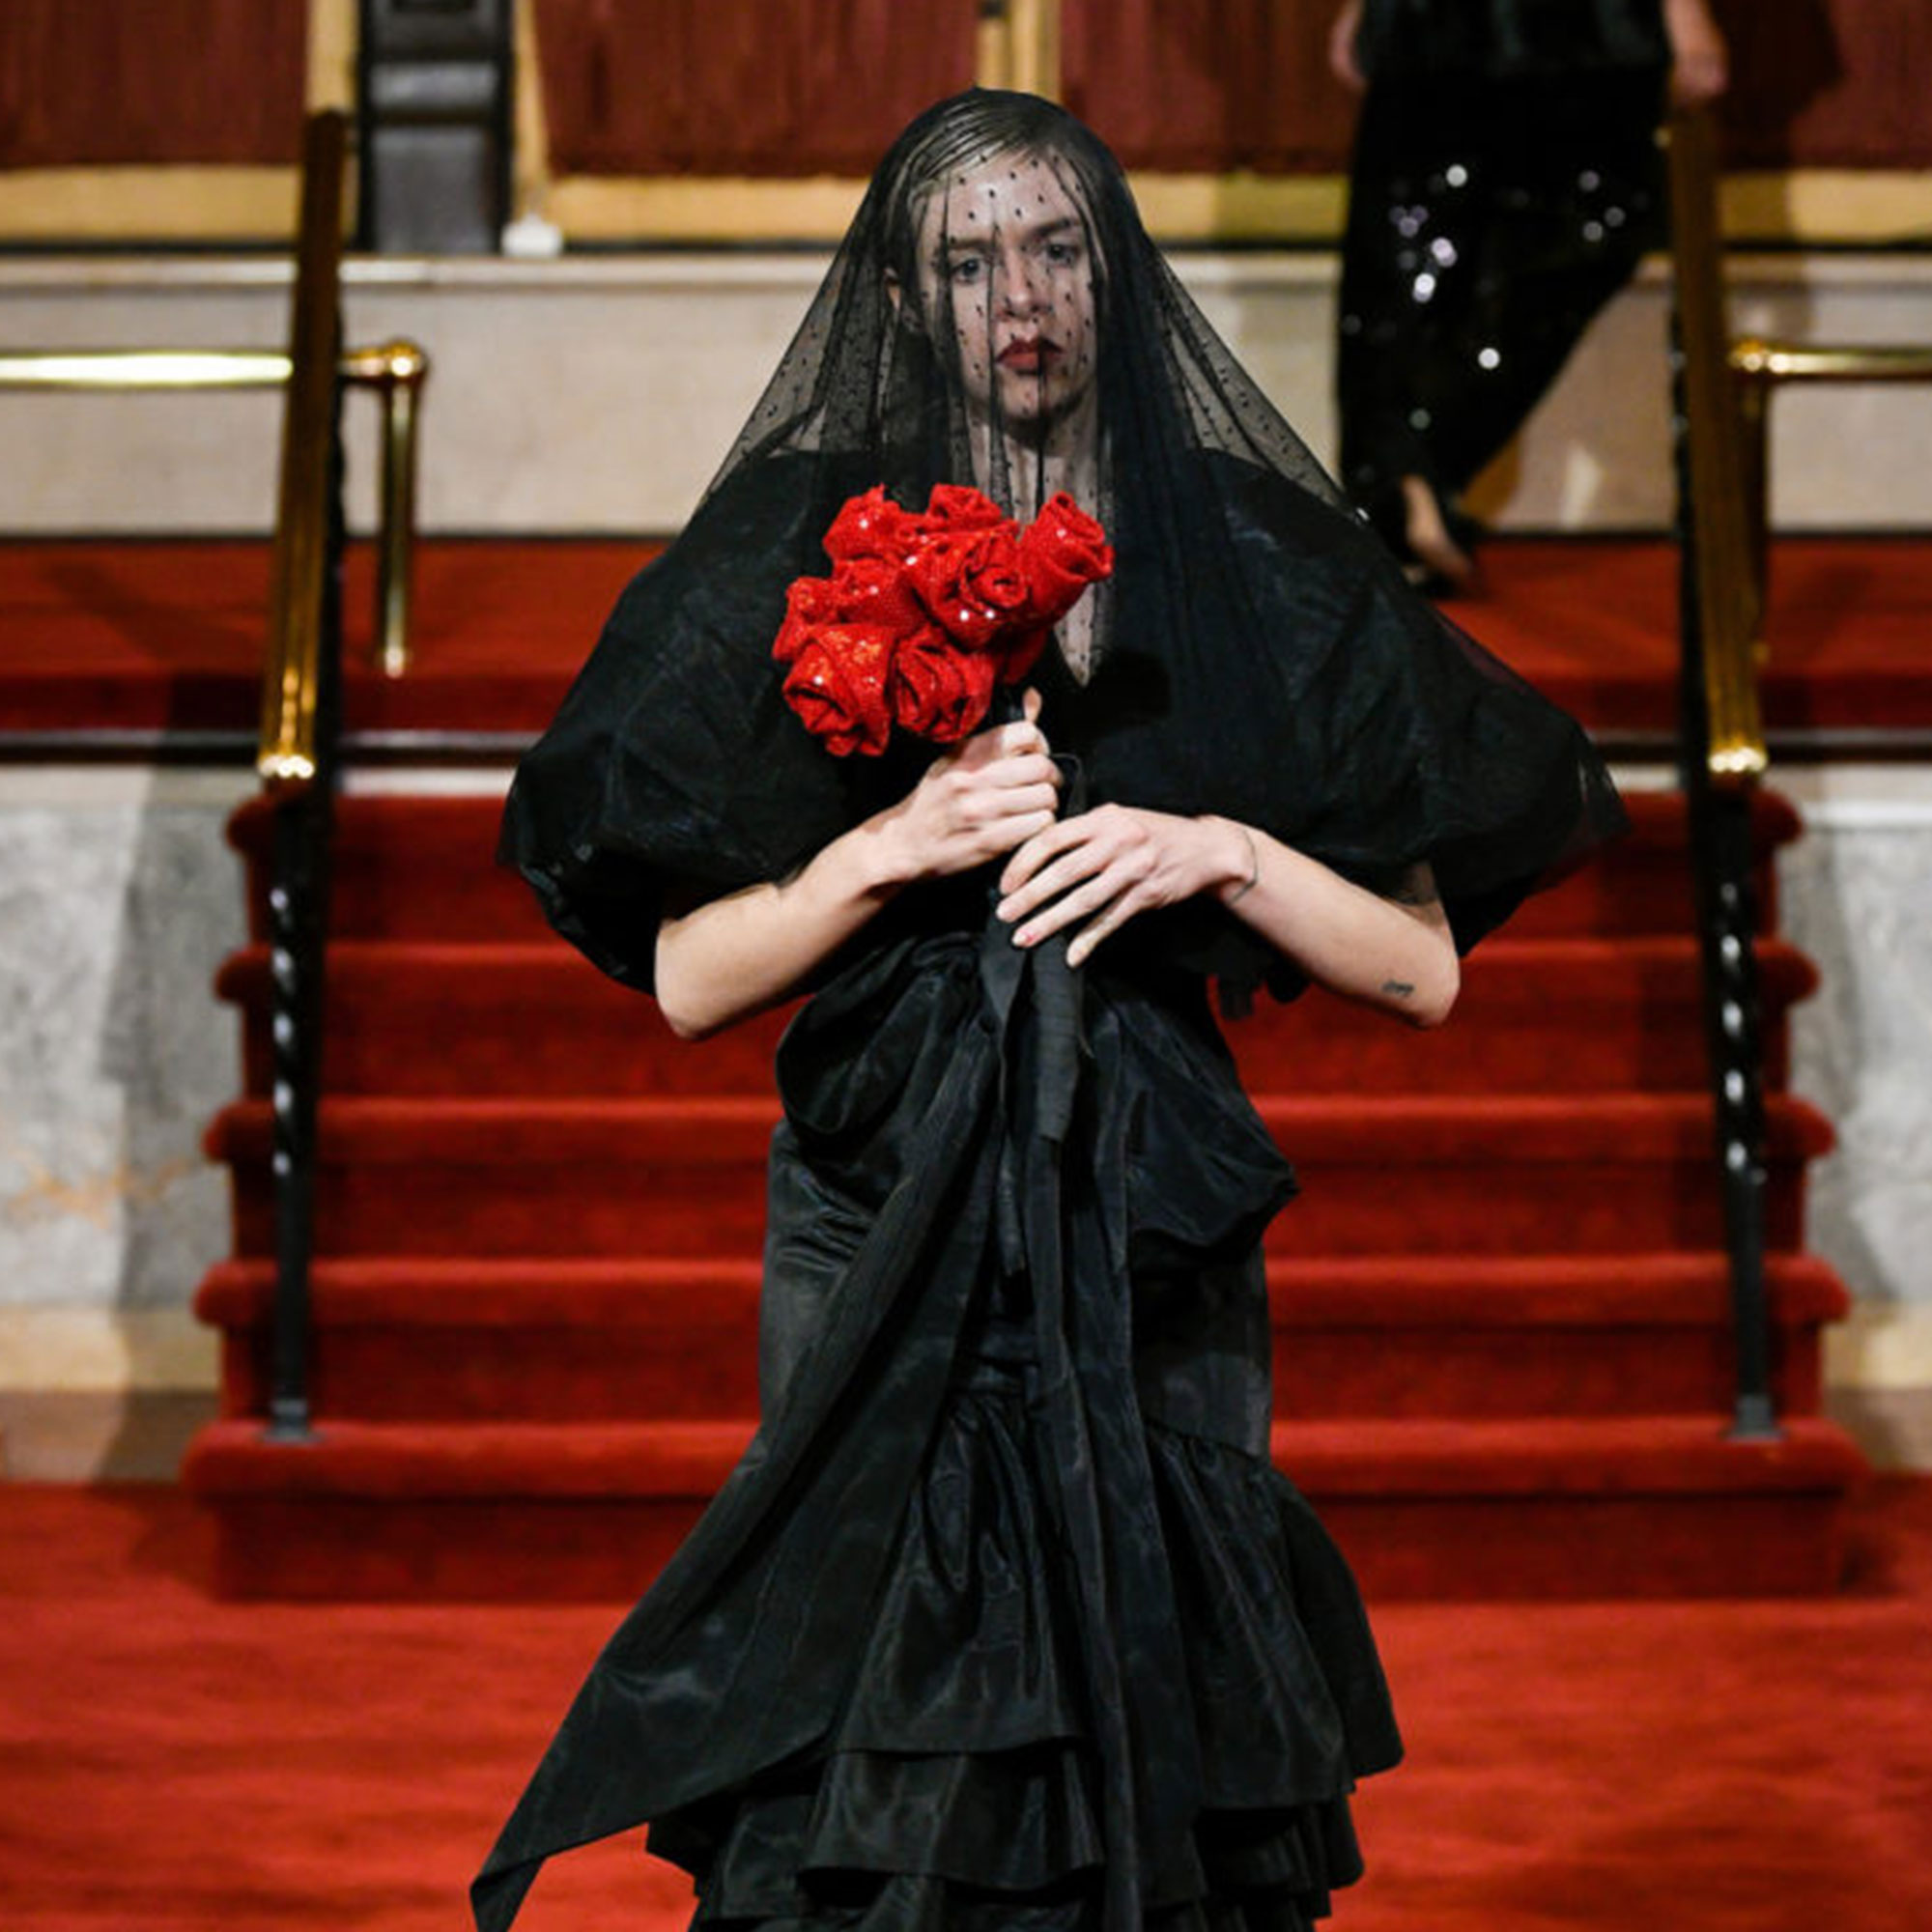 Vaquera's Staged Death of New York City at NYFW – SURFACE